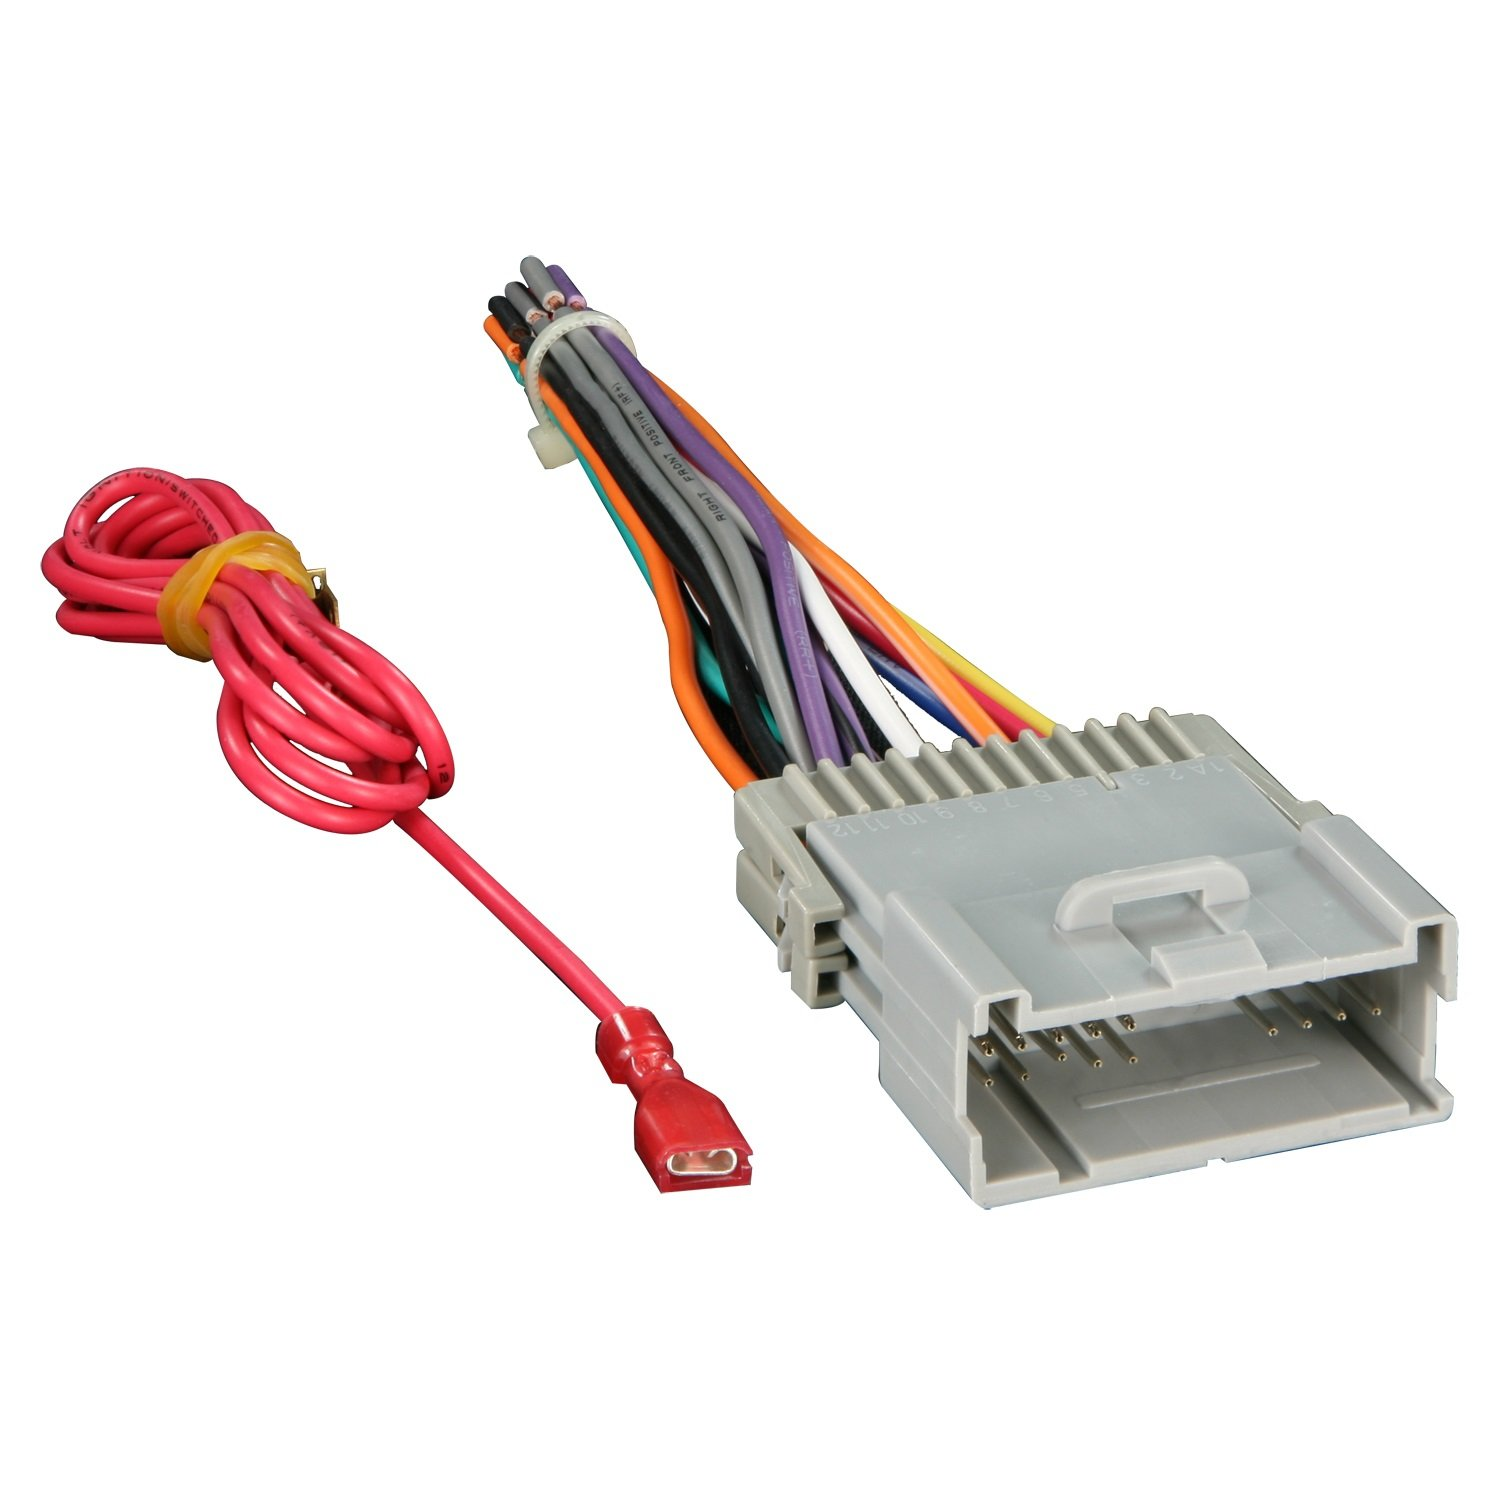 61eewxp9orL._SL1500_ amazon com metra 70 2003 radio wiring harness for gm 98 08 what is a wire harness in a car at crackthecode.co